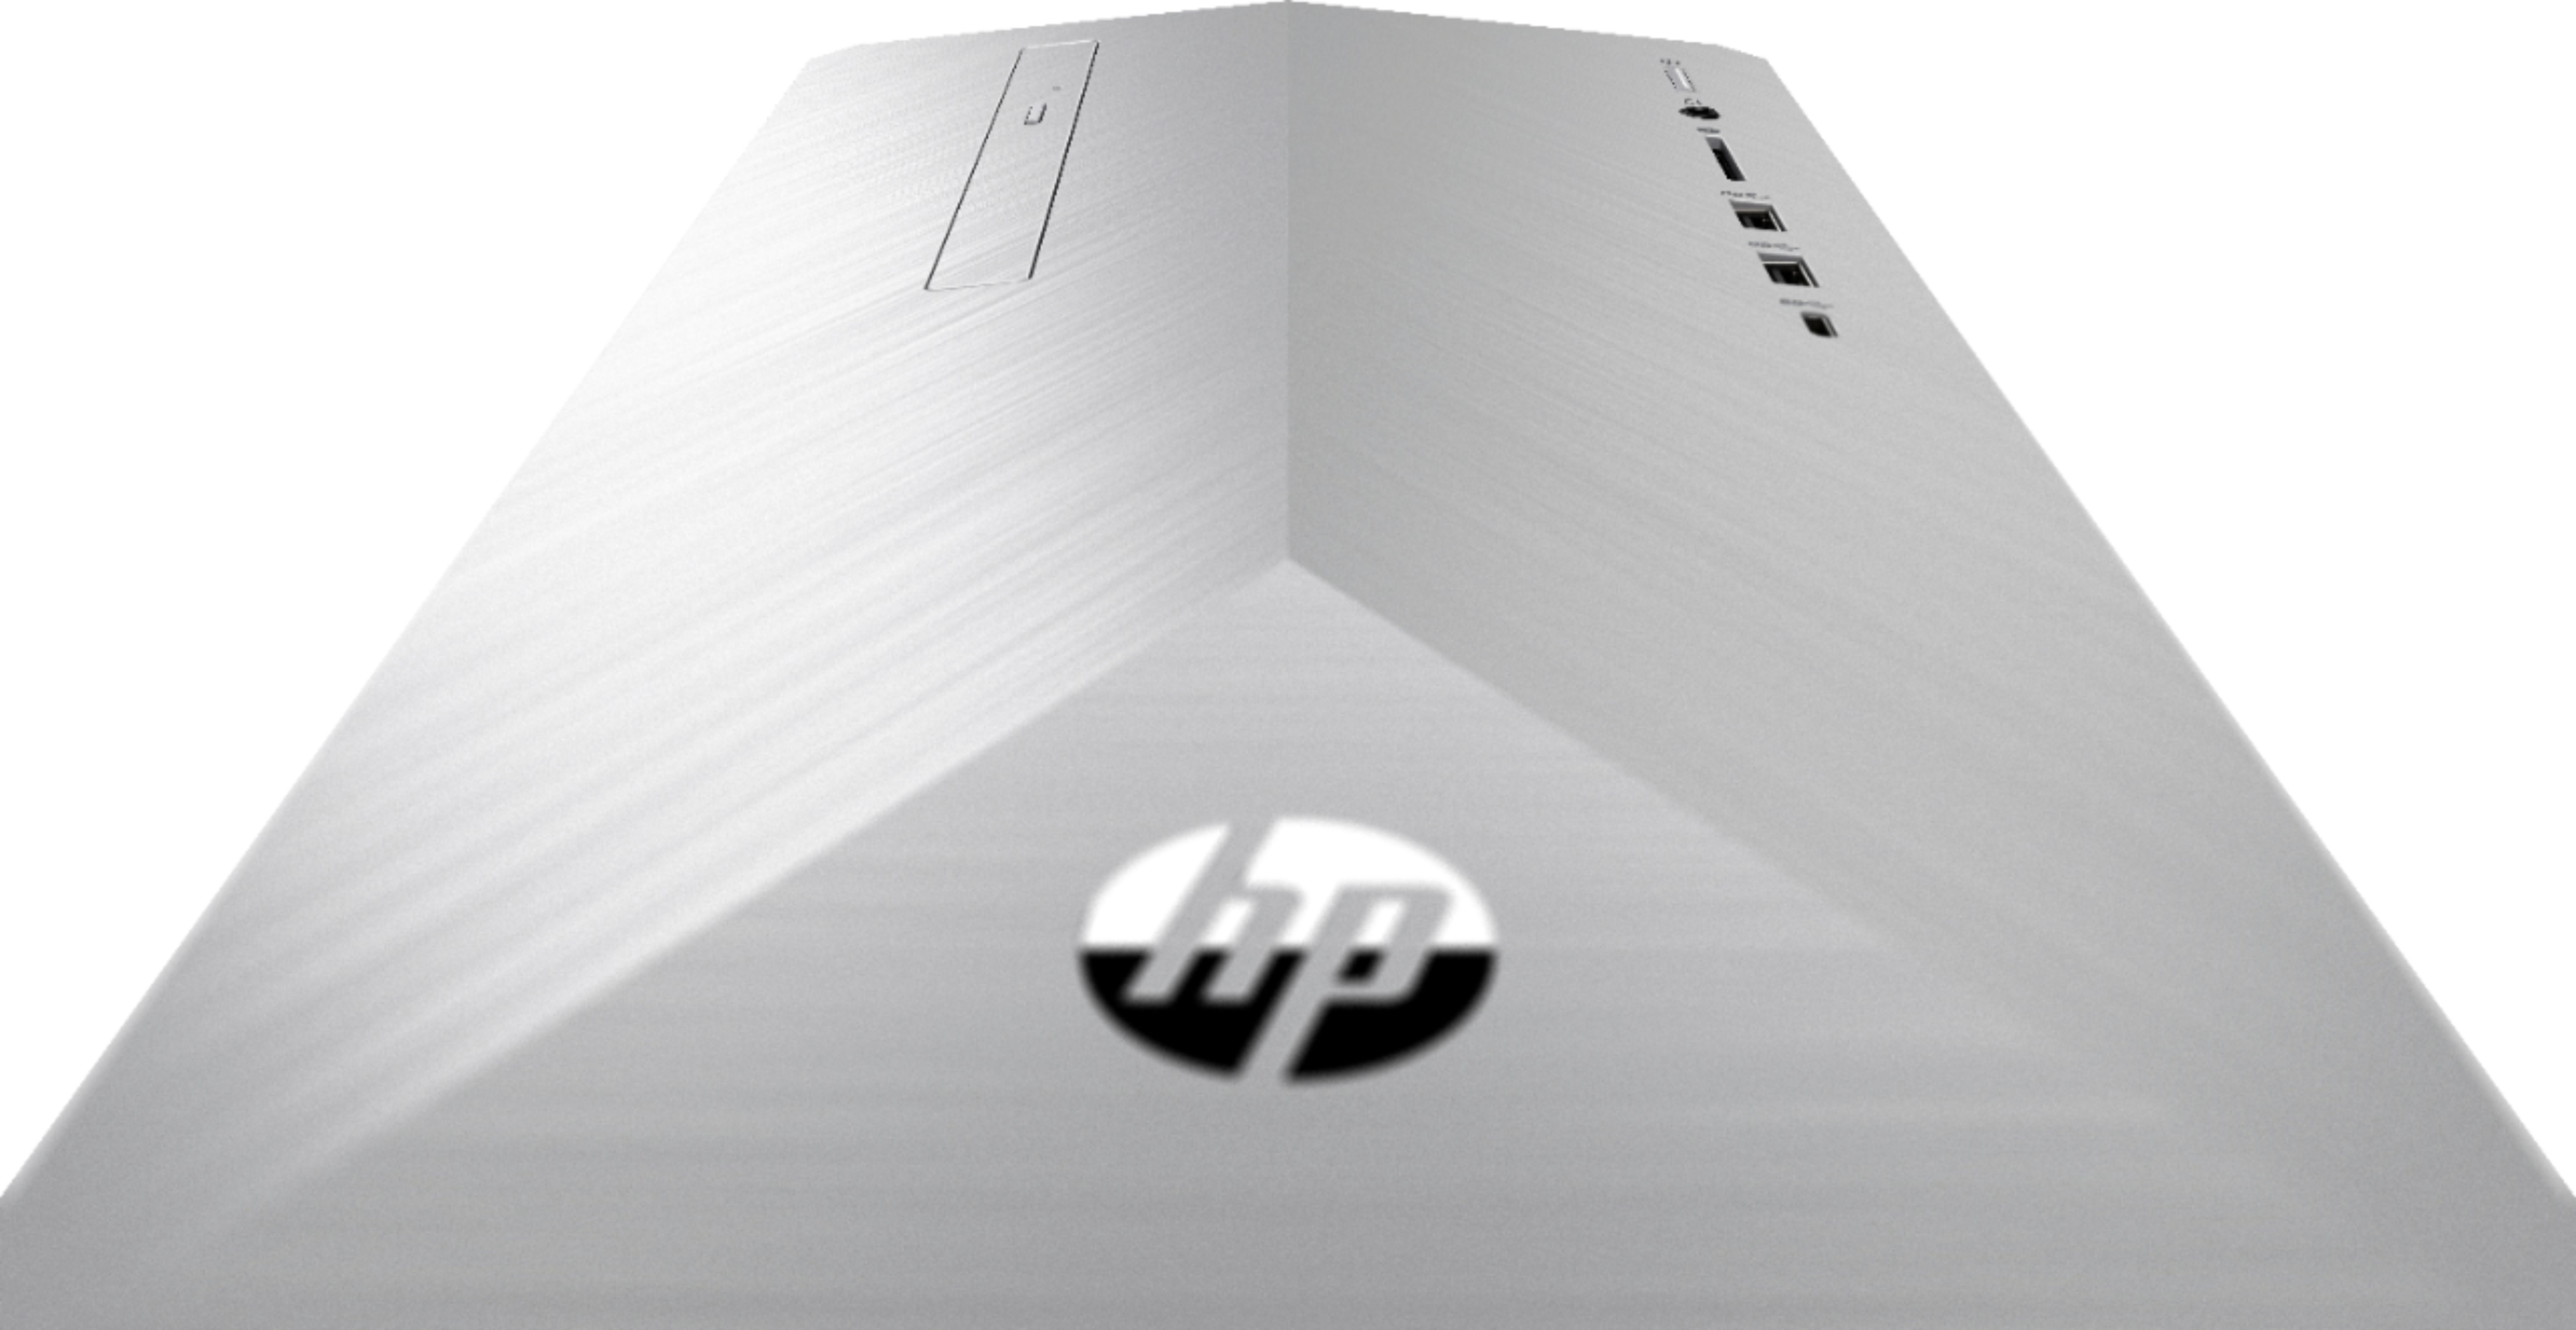 Alt View Zoom 14. HP - Geek Squad Certified Refurbished Pavilion Desktop - Intel Core i5 - 12GB Memory - 1TB HDD + 128GB SSD - Natural Silver/Brushed Hairline Pattern.